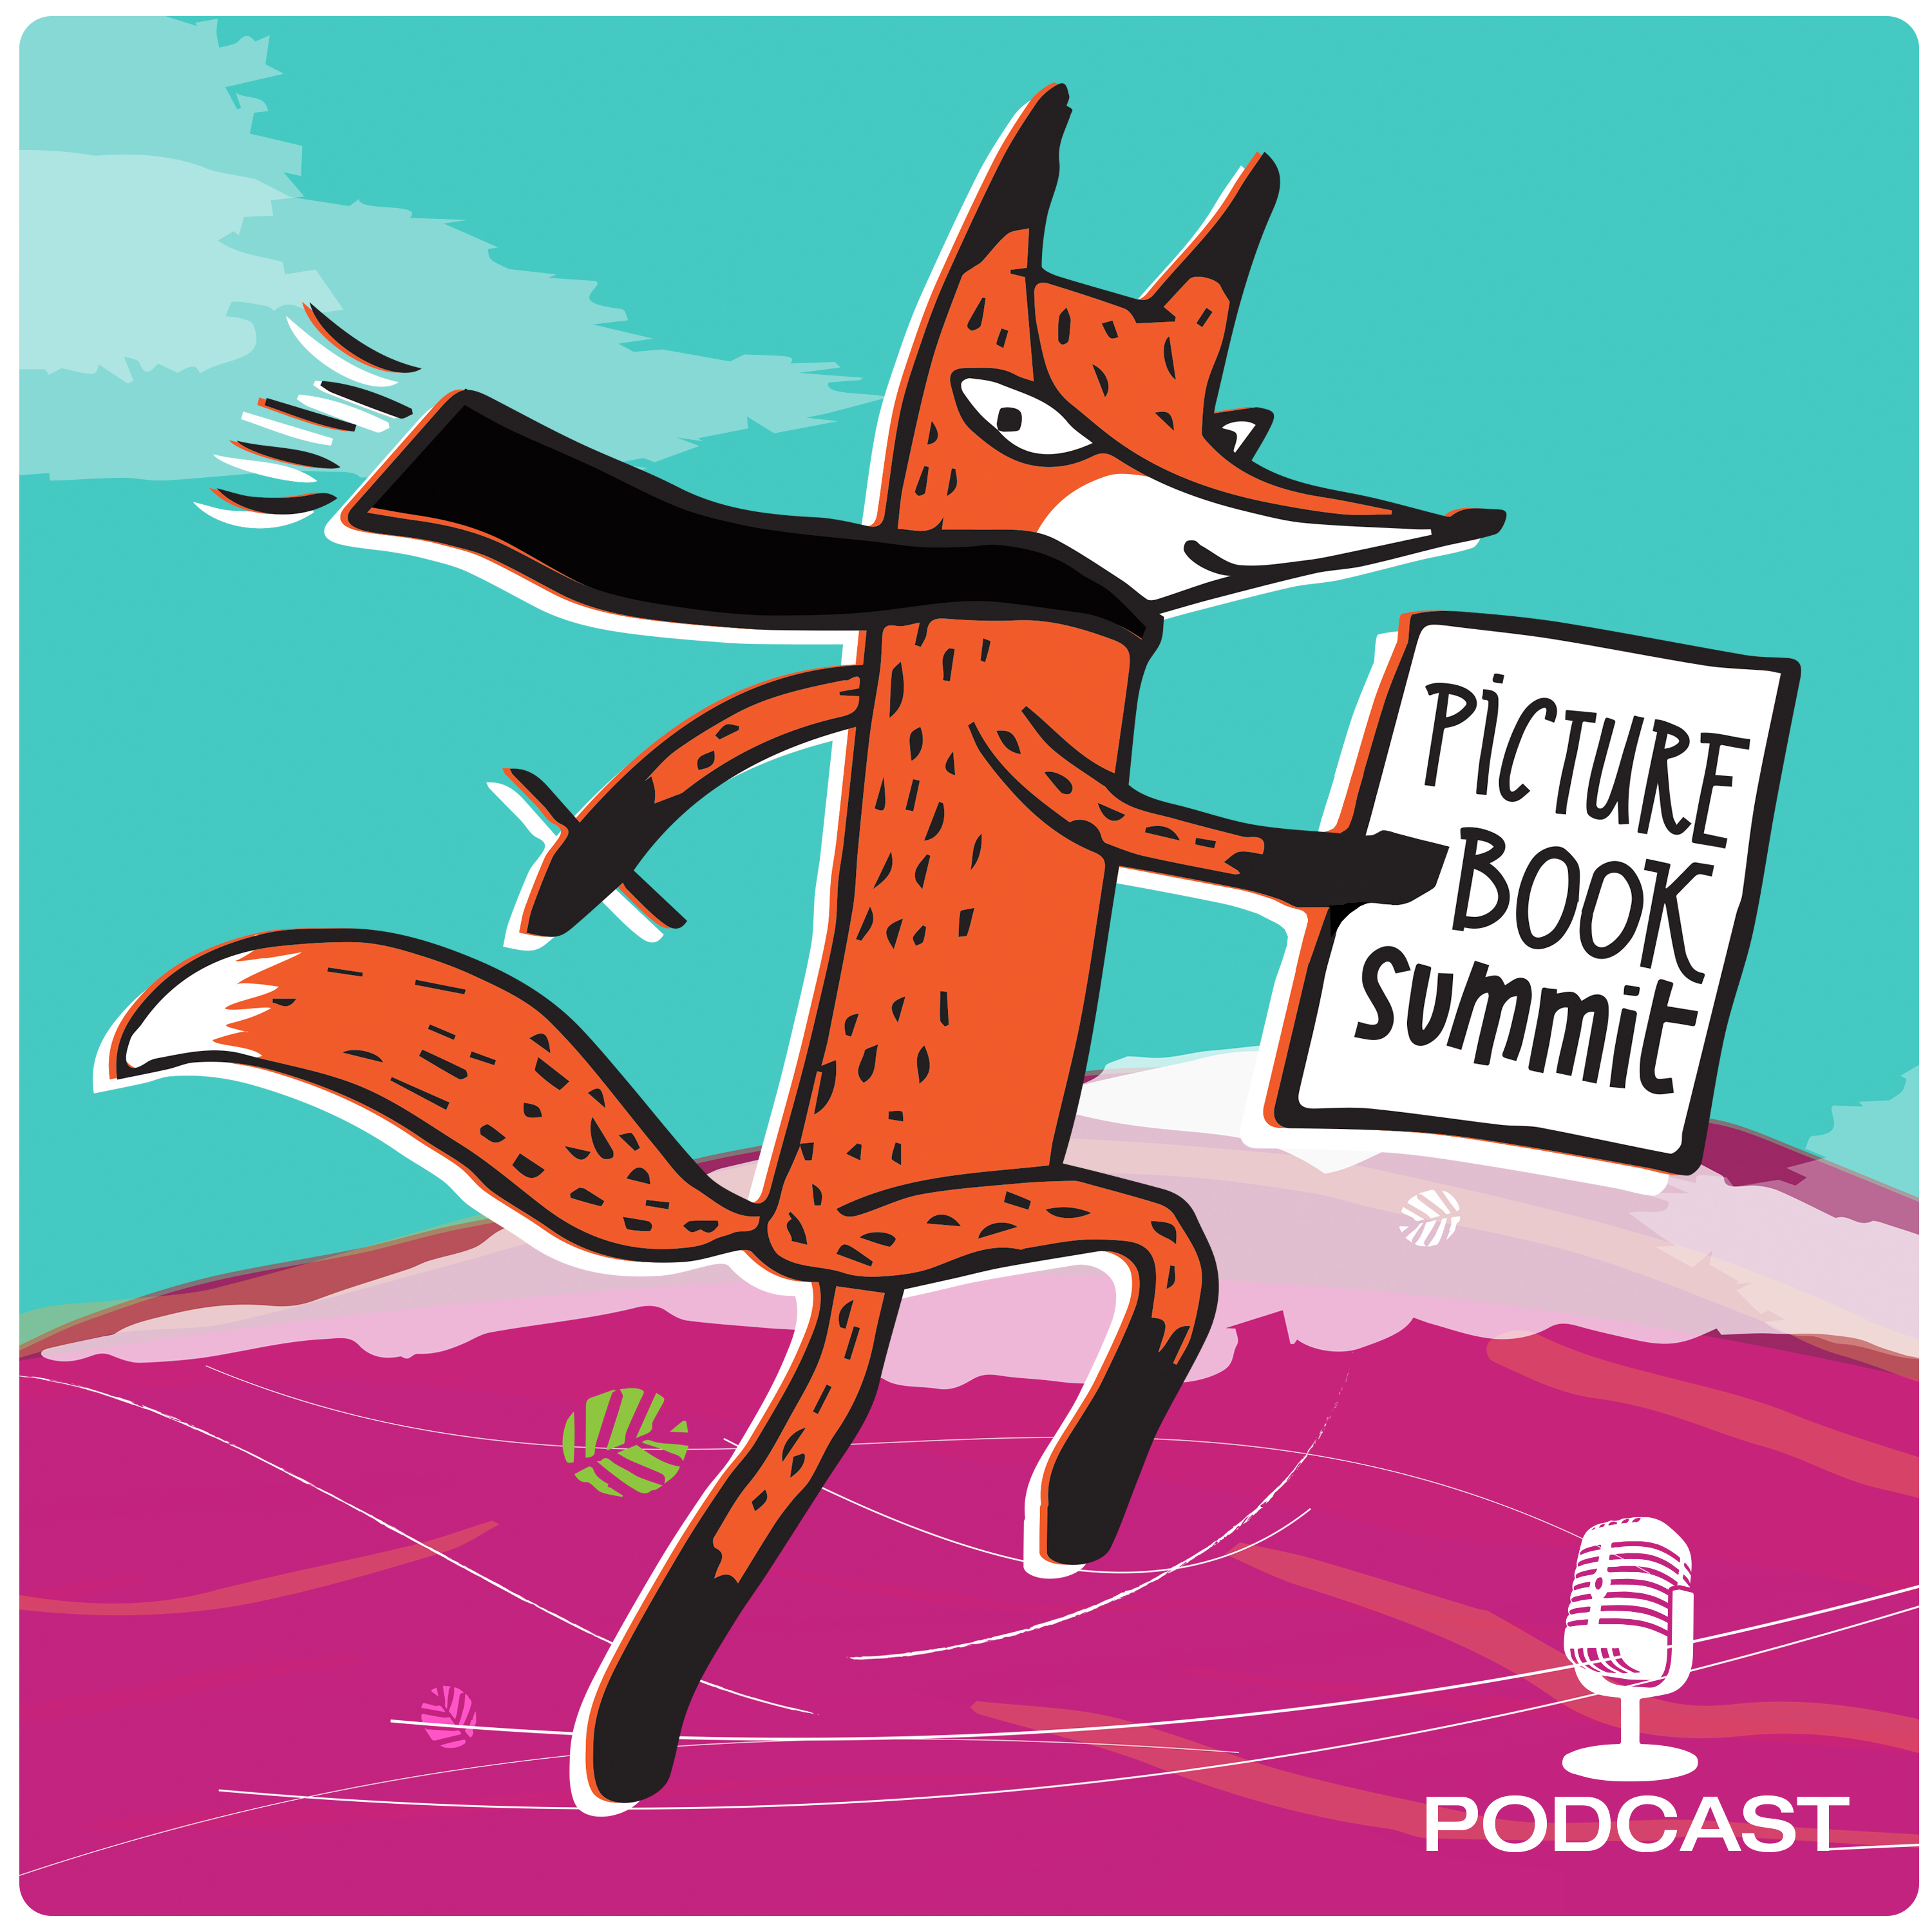 Picture Book Summit Podcast show art